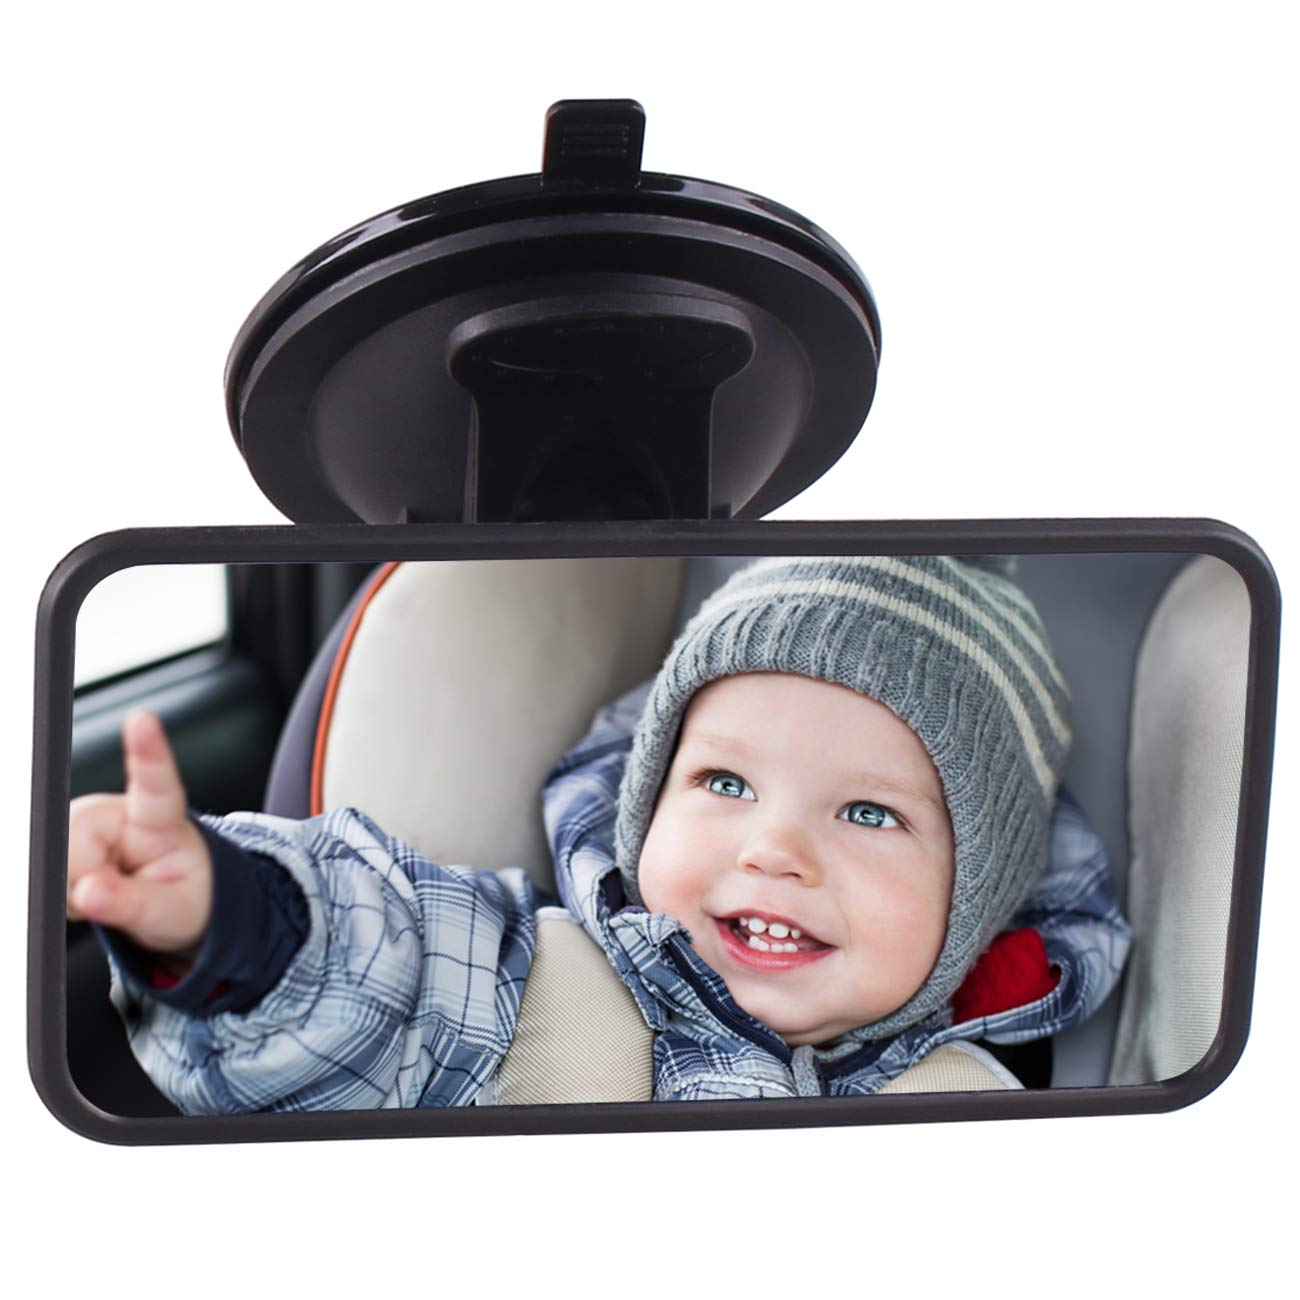 Baby Car Mirror, Baby Mirror for Car Seat Rear Facing Mirrors for Infant, Carseat Back Seat Backseat Child Safety Rear view Rearview Mirror by Heart Horse